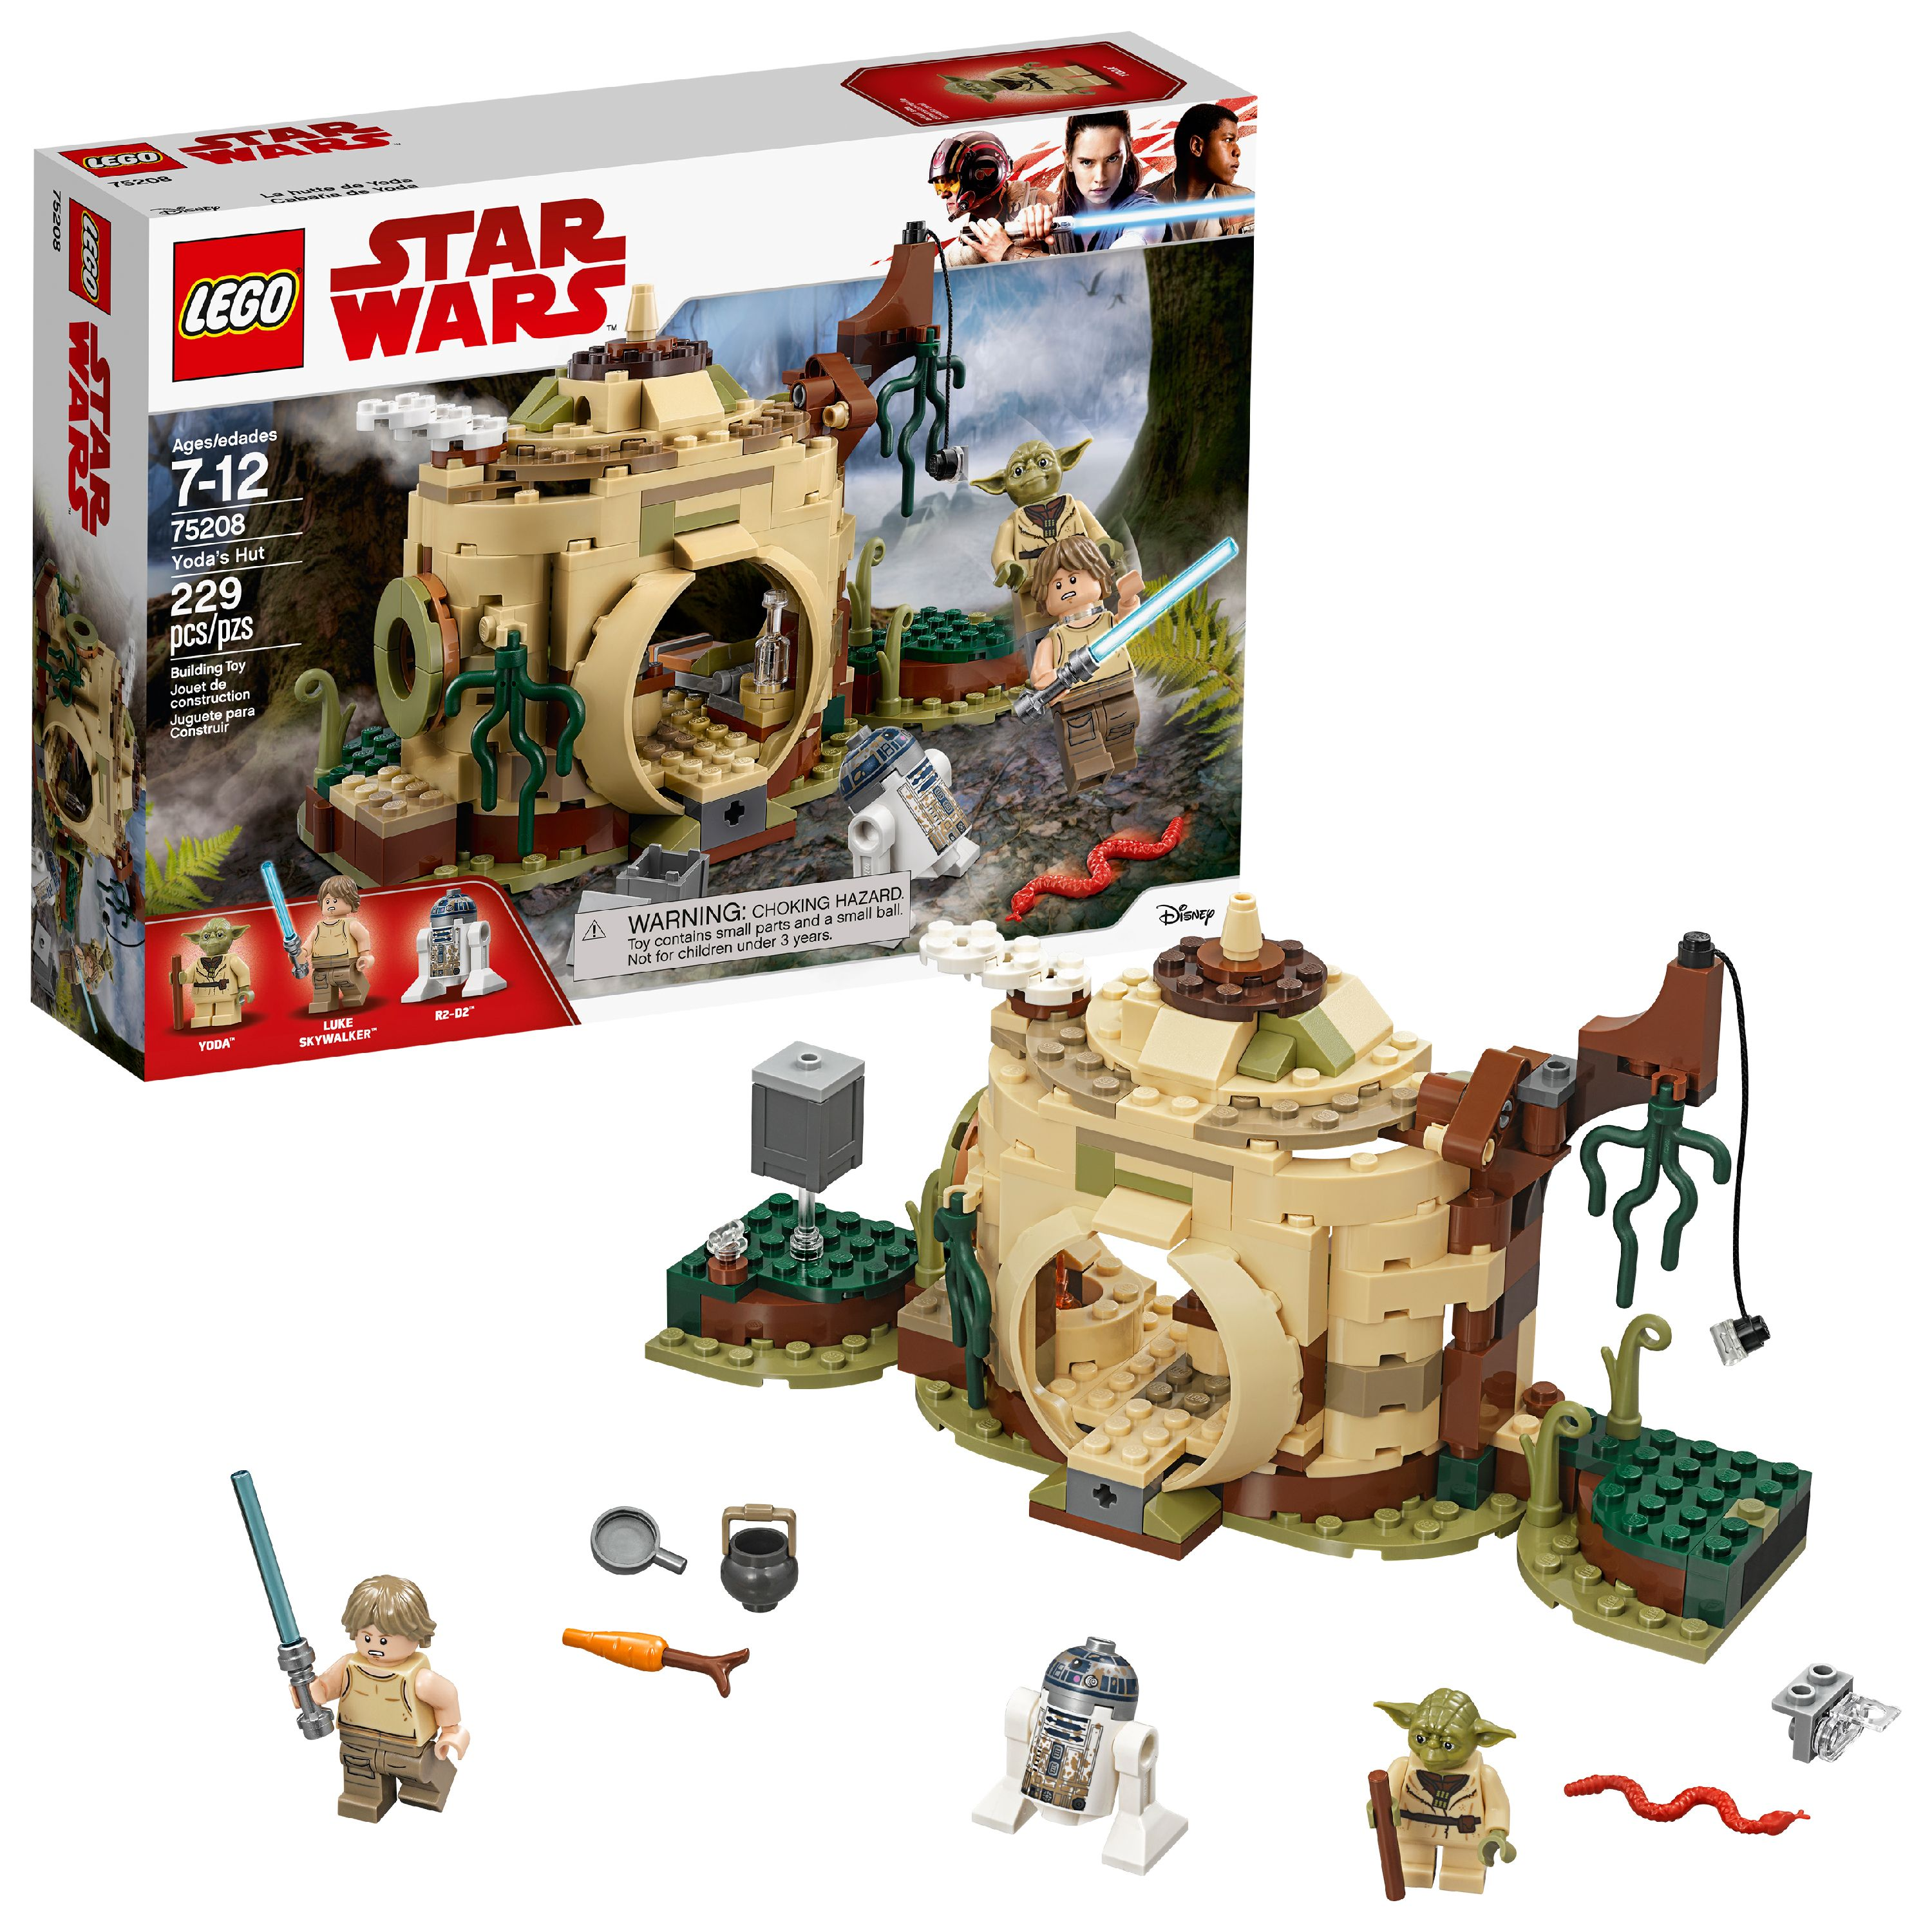 LEGO Star Wars TM Yoda's Hut 75208 Building Set (229 Pieces)